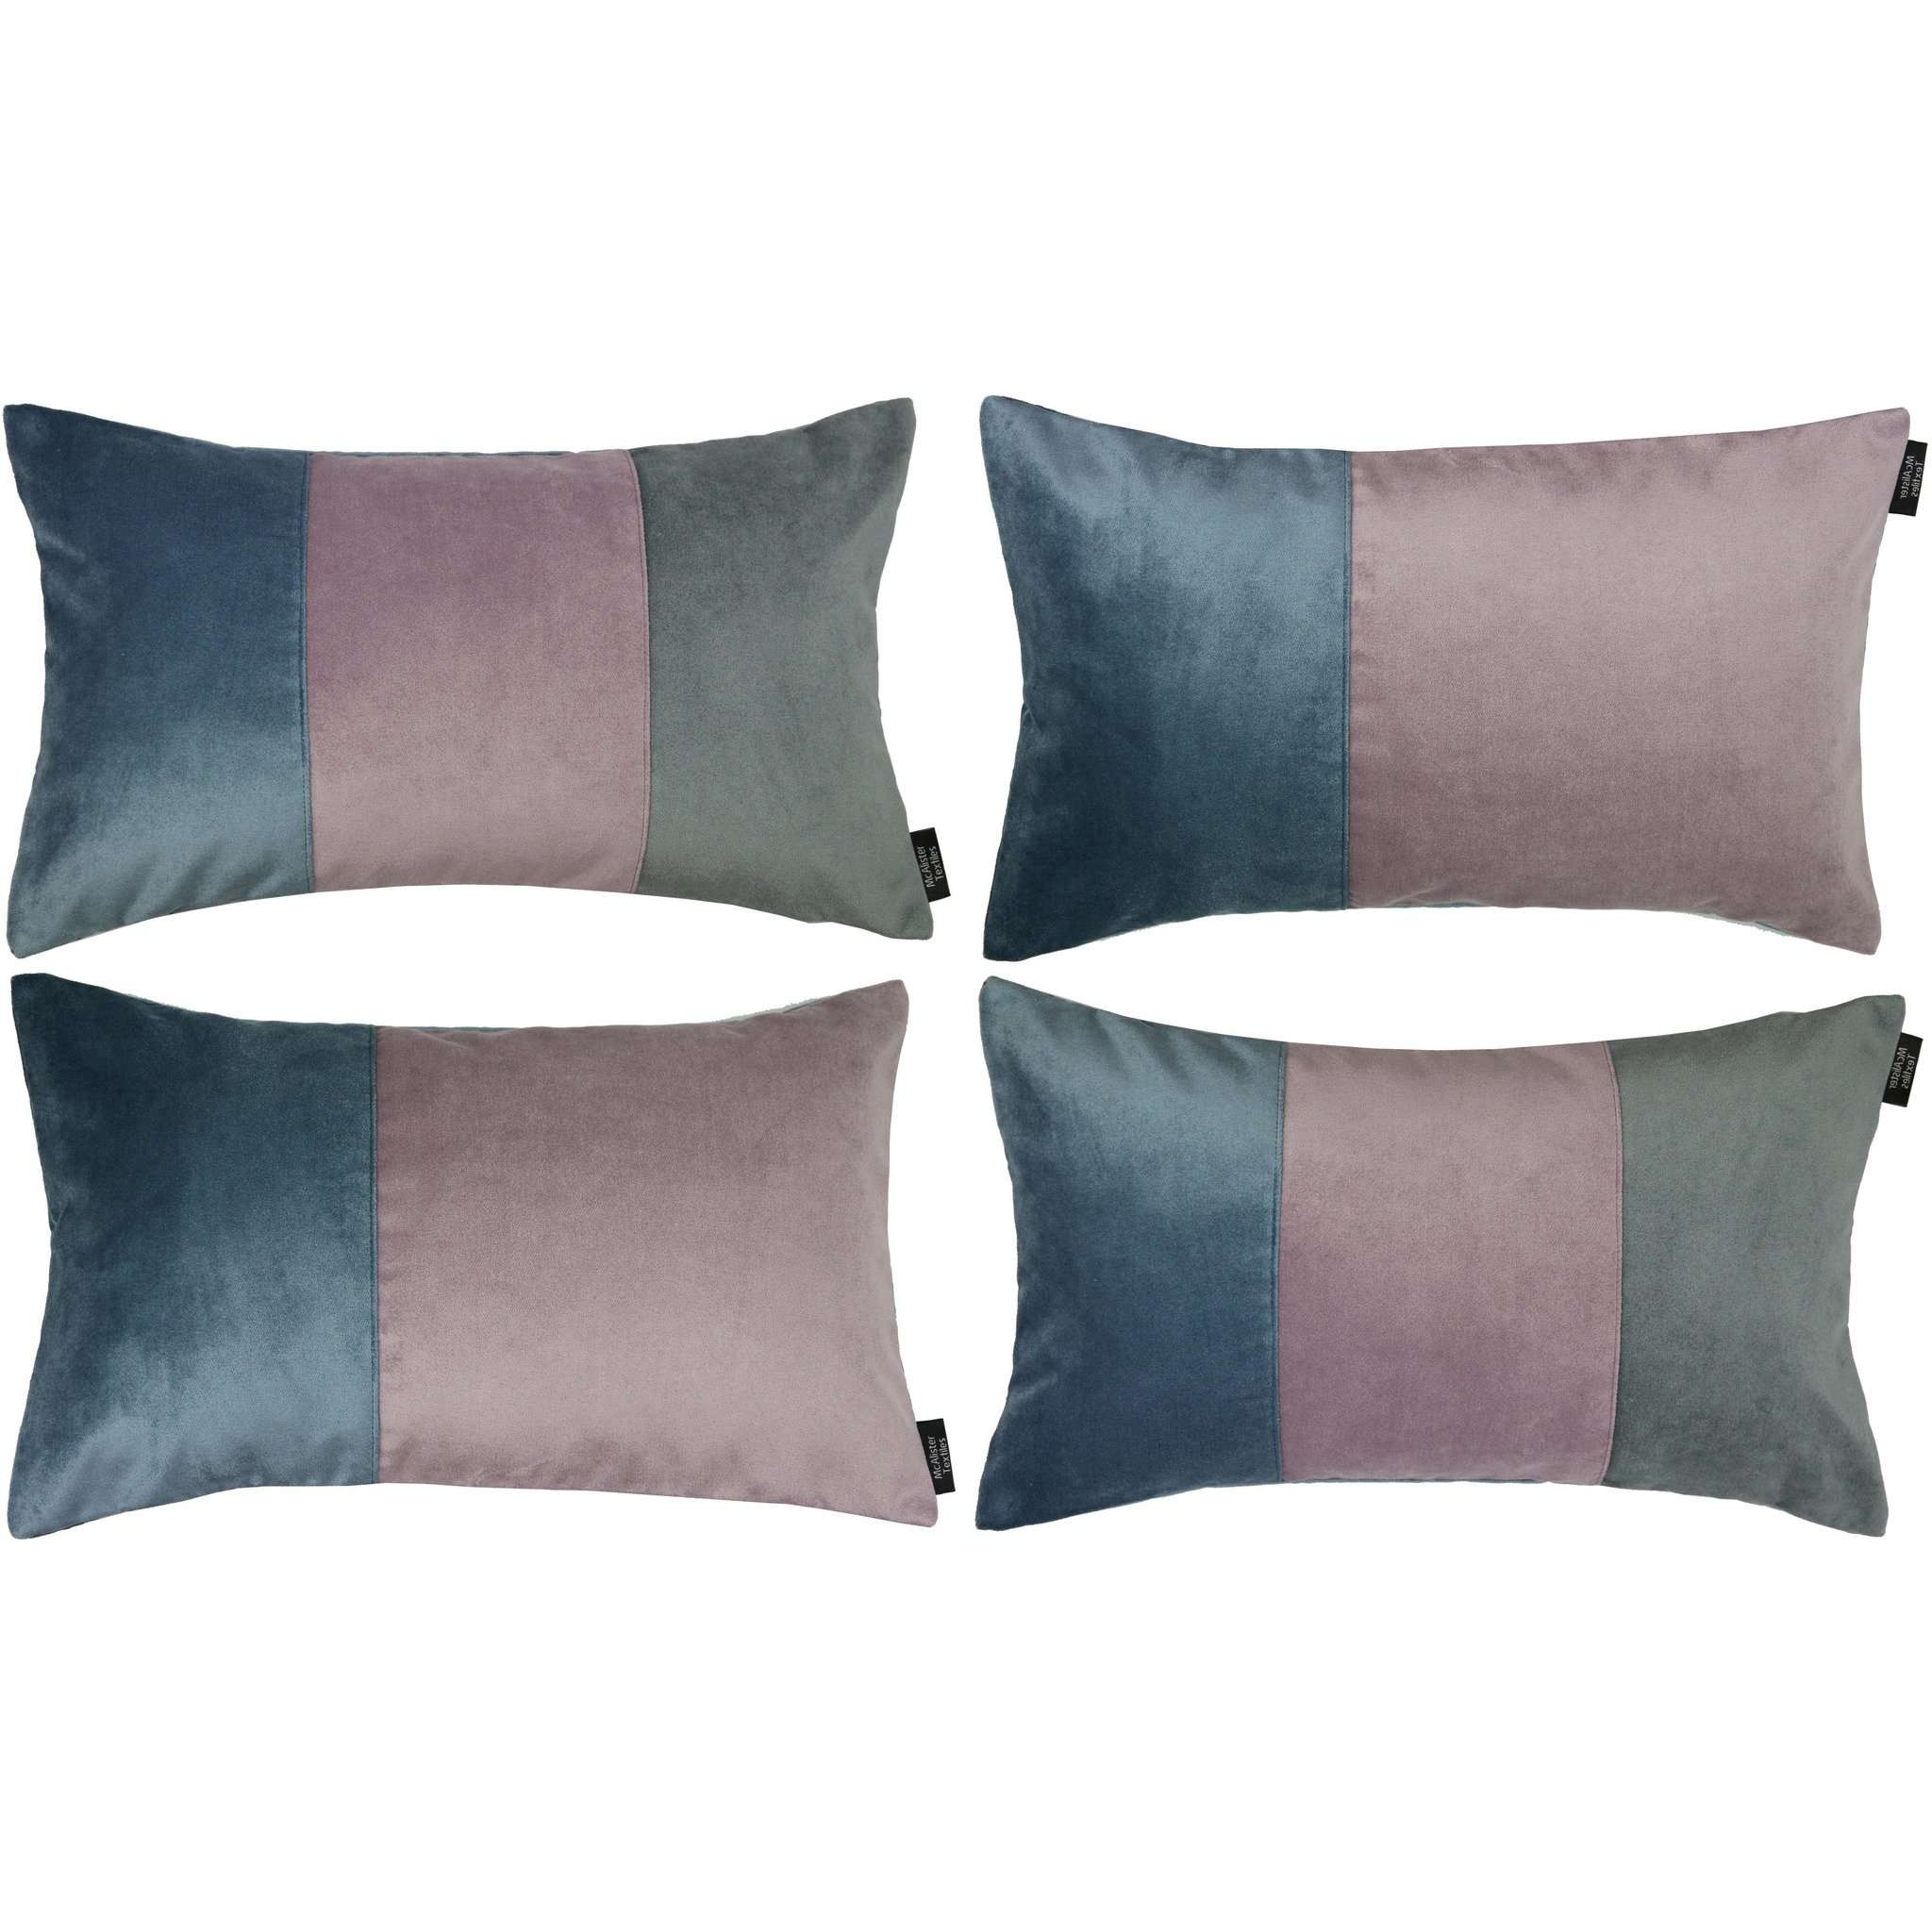 McAlister Textiles Patchwork Velvet Blue, Purple + Grey Pillow Set Pillow Set of 4 Cushion Covers